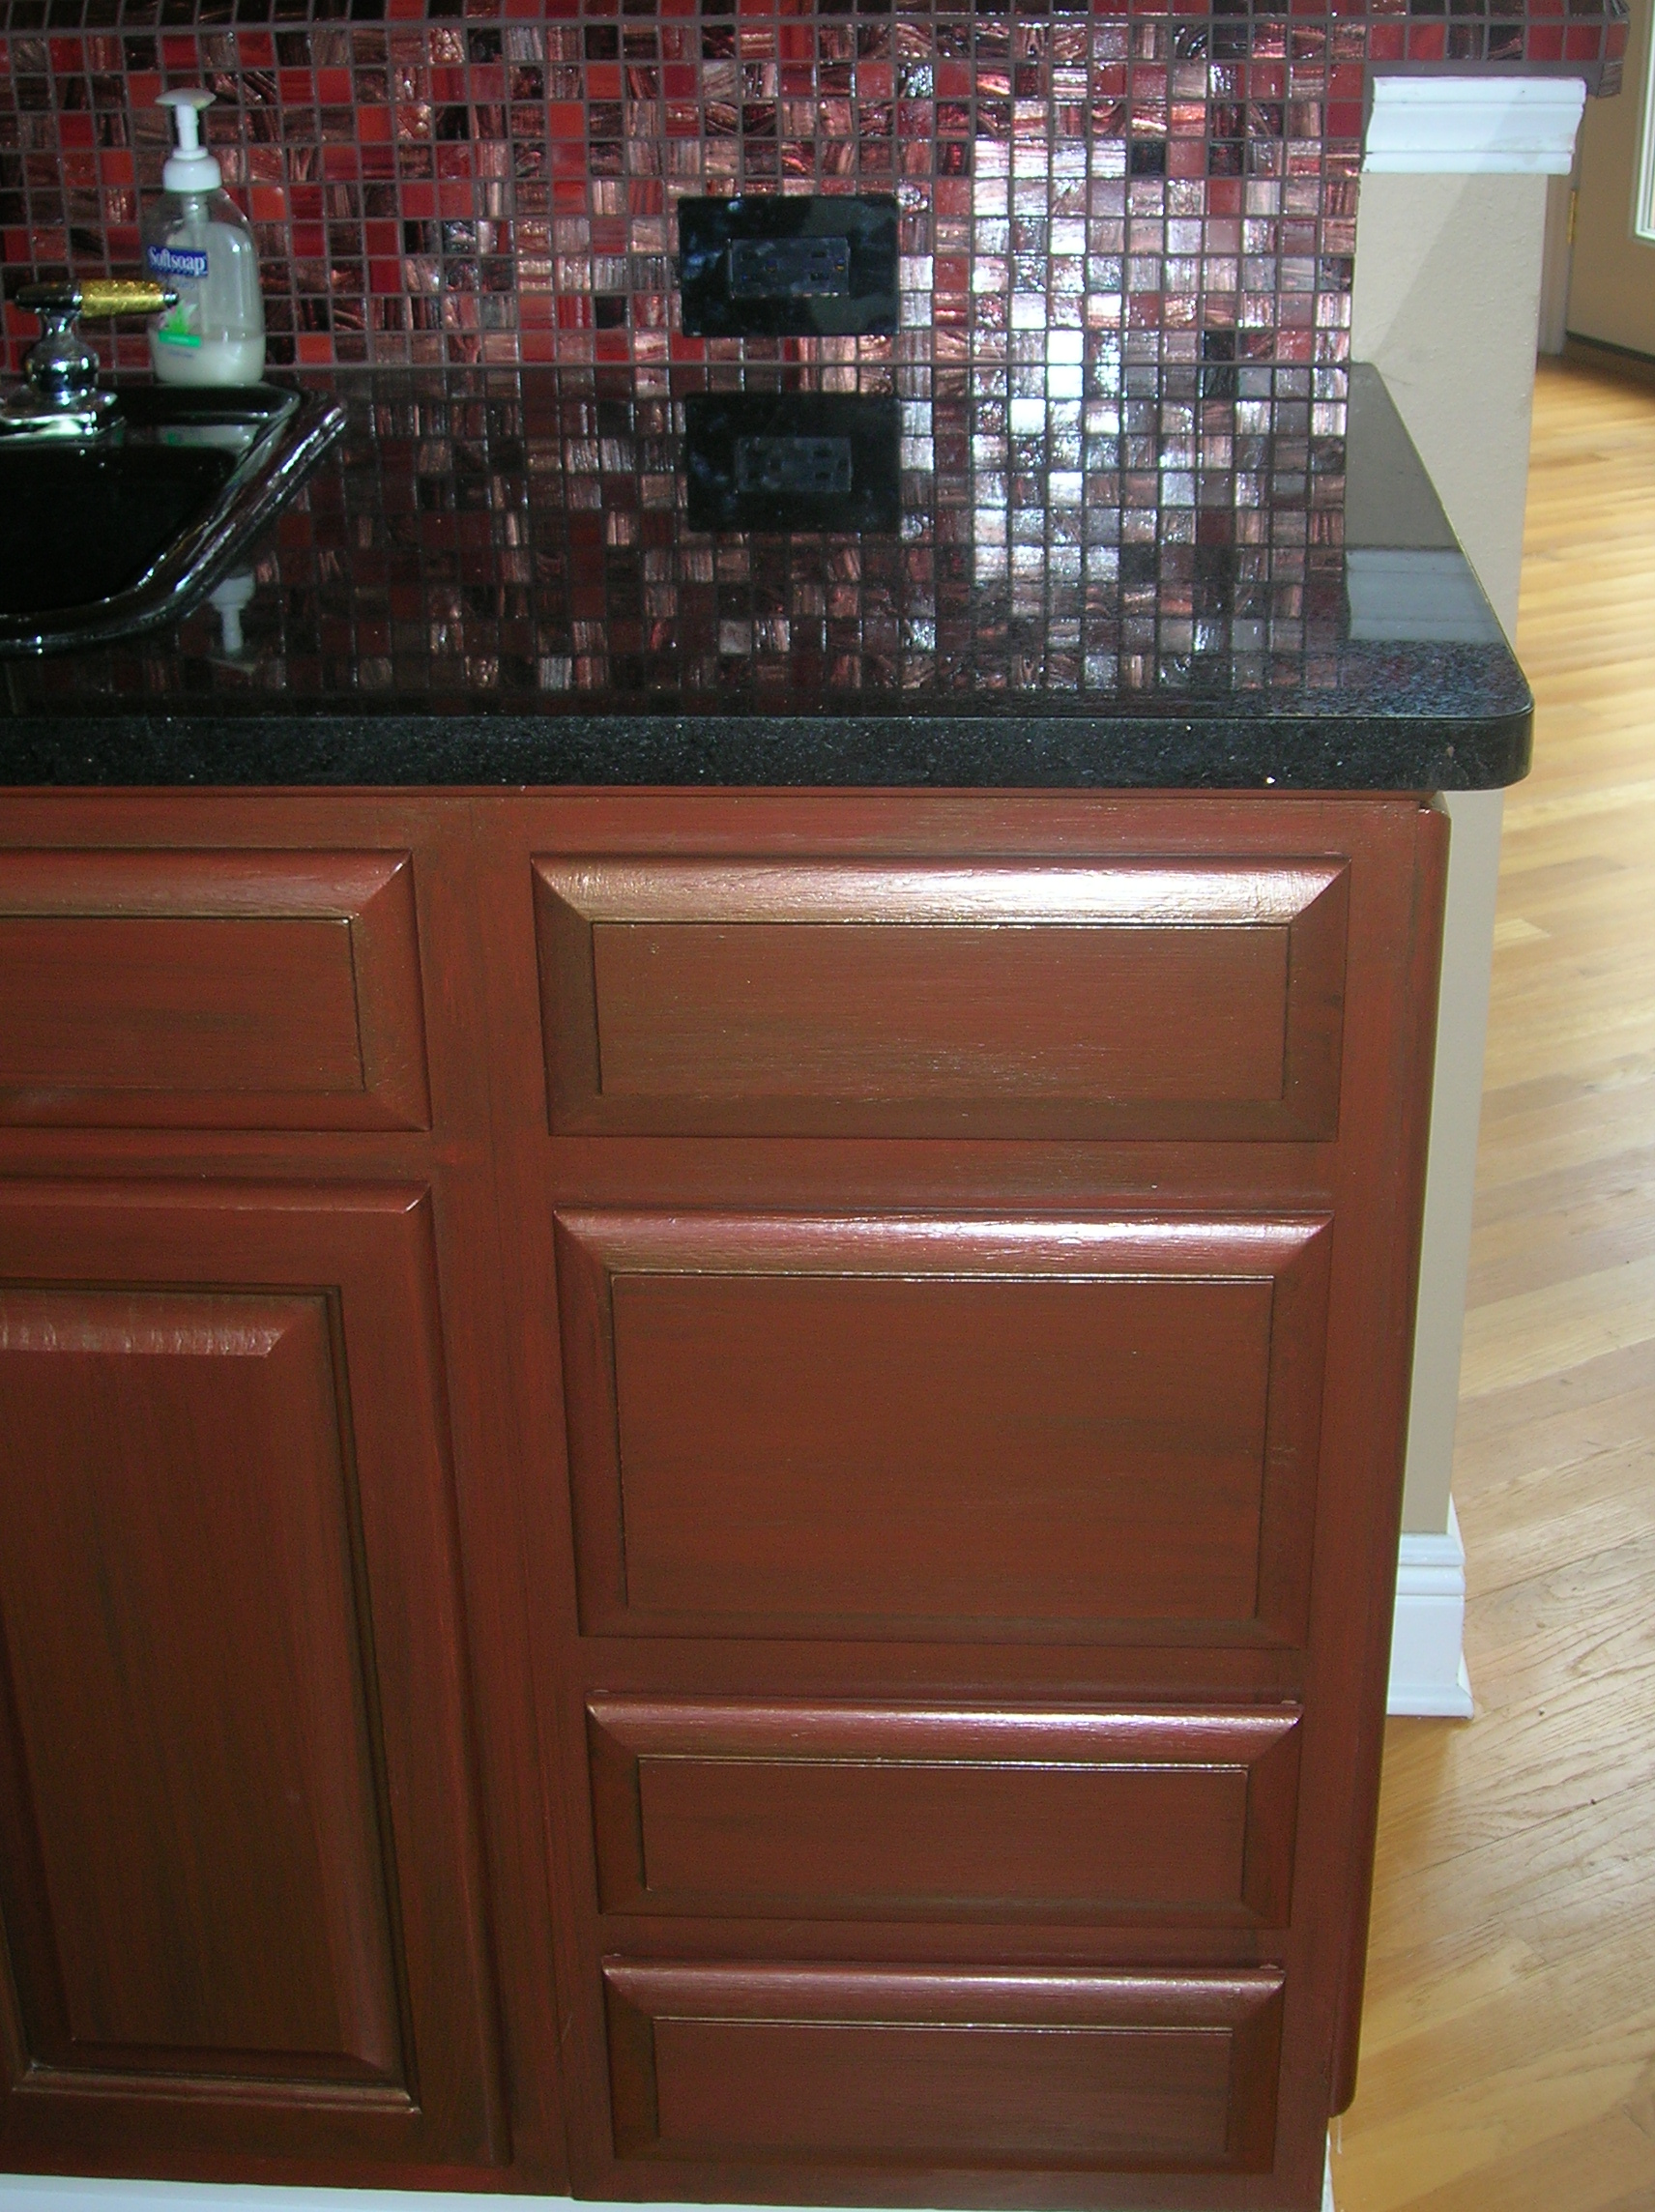 kitchen cabinets, metallic cabinets, glazed cabinets